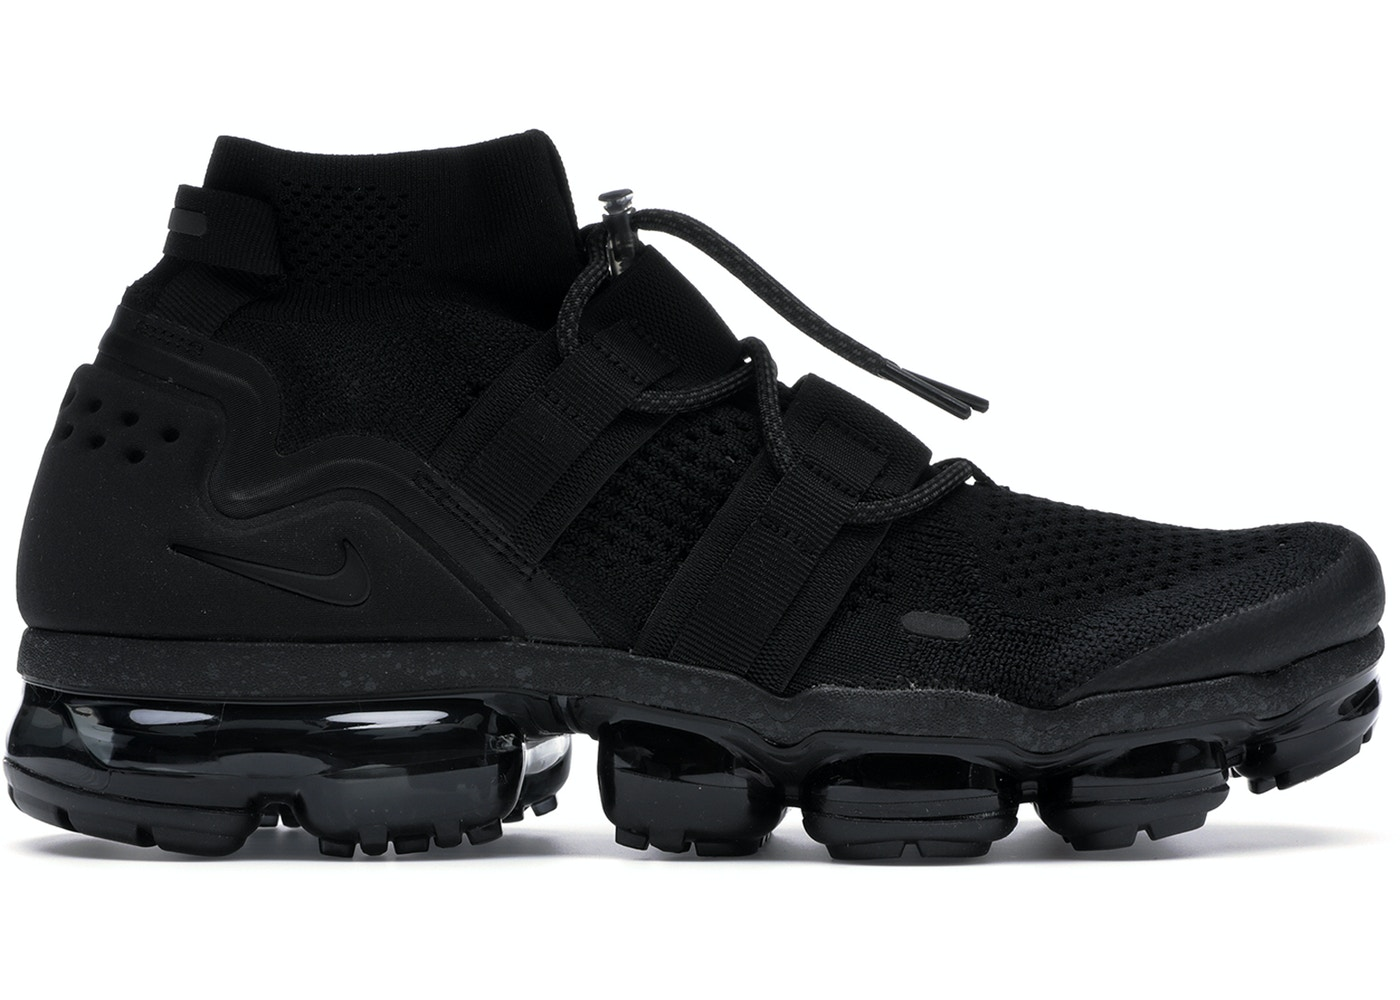 3db6b6ebc04 Air VaporMax Utility Triple Black - AH6834-001